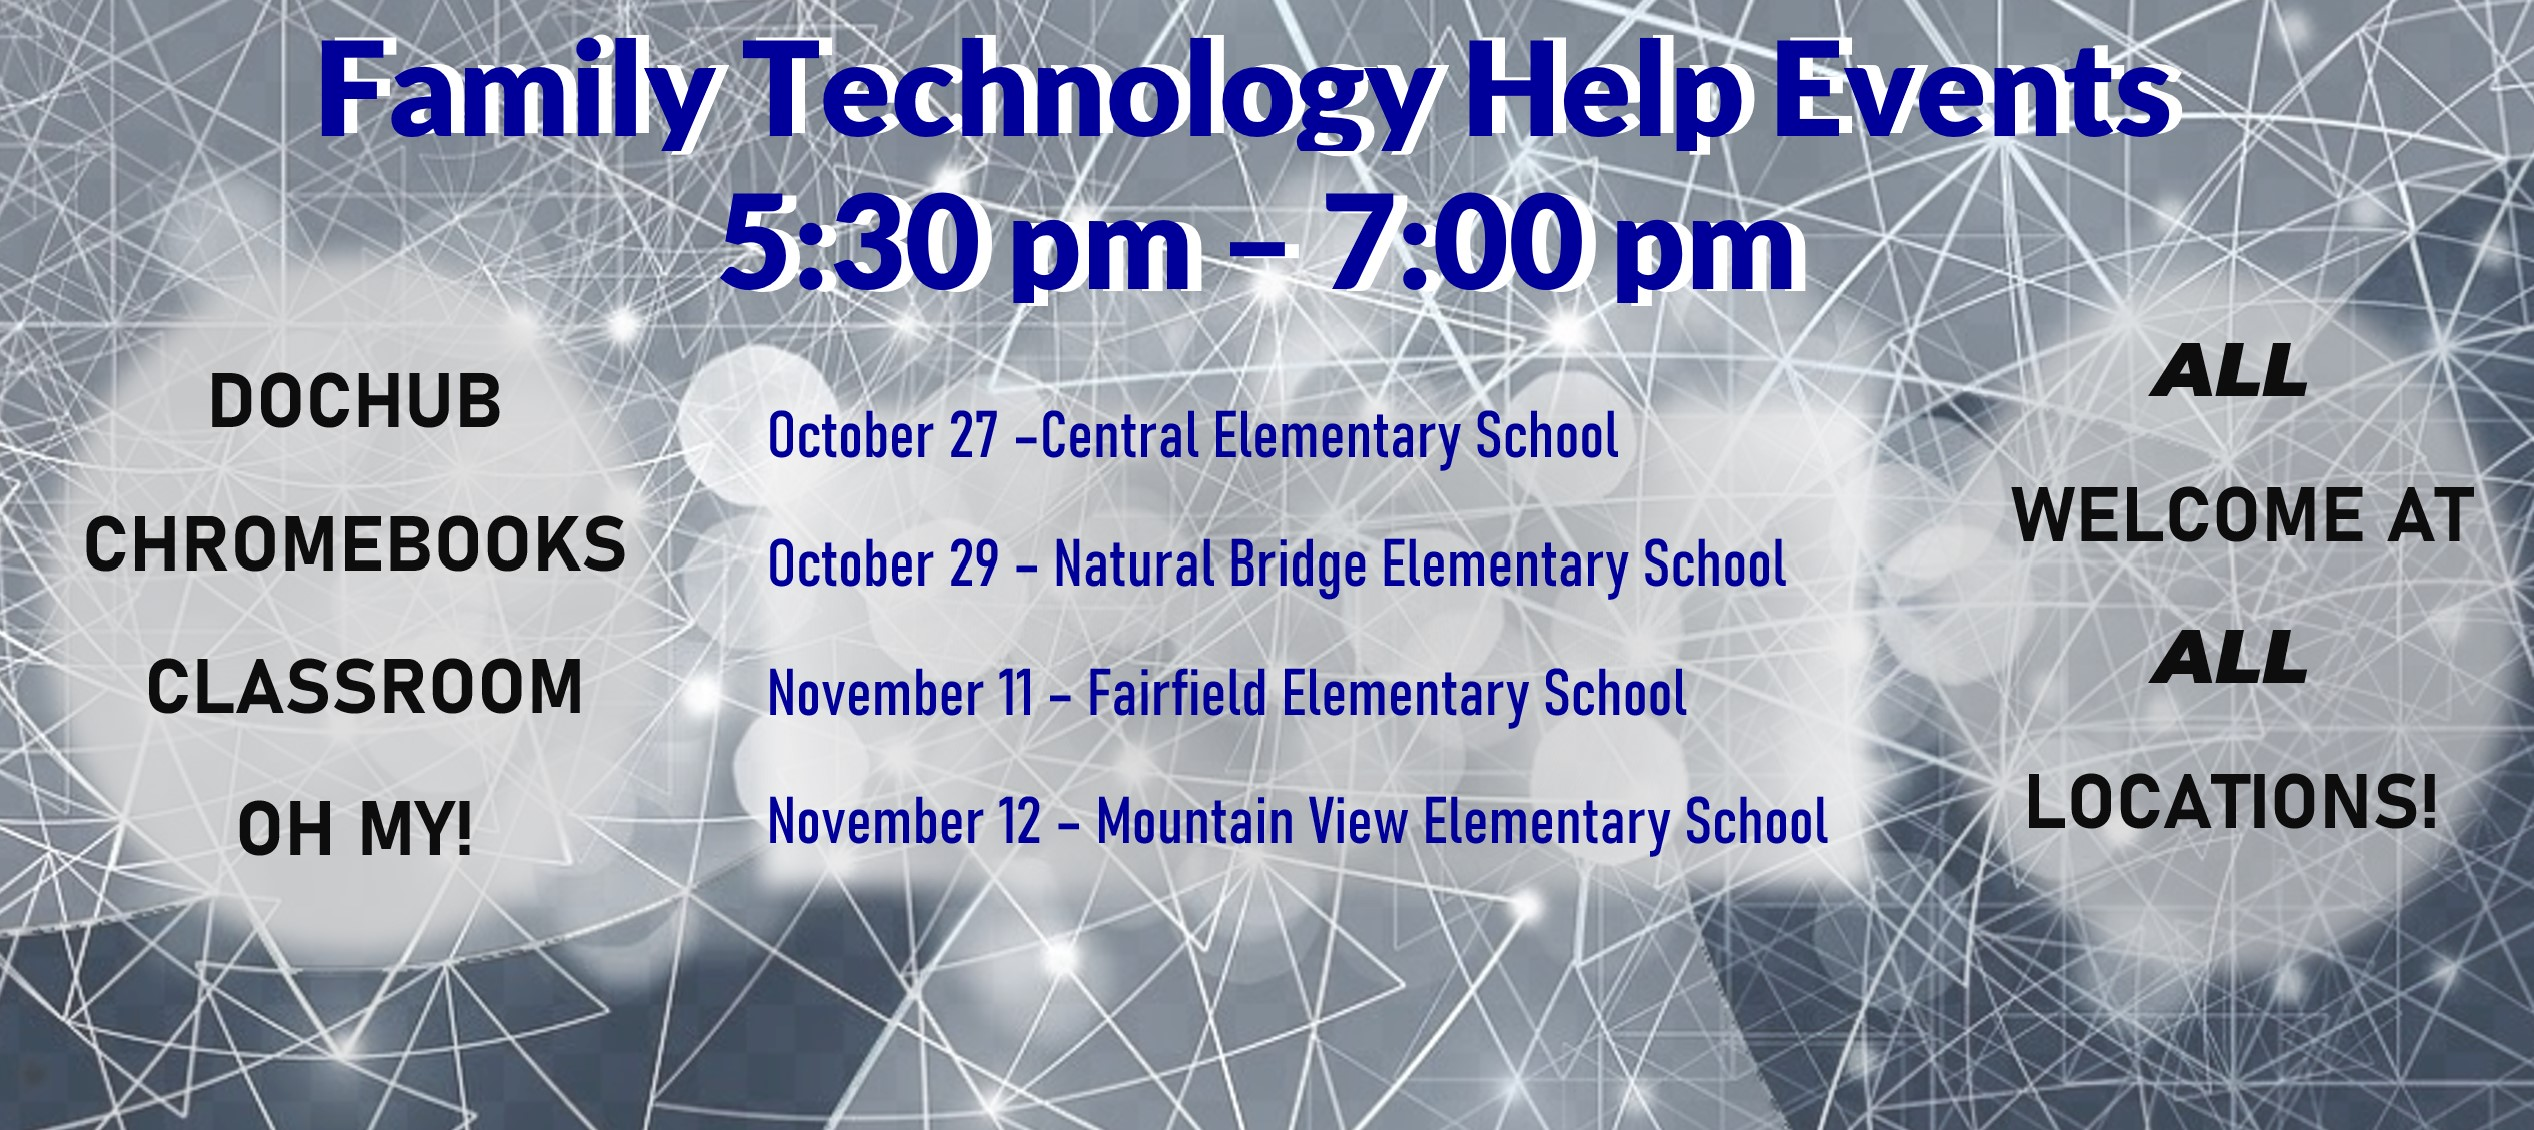 Family Tech Help Event 10/27 at CES, 10/29 at NBES, 11/11 at FES, 11/12 at MVES